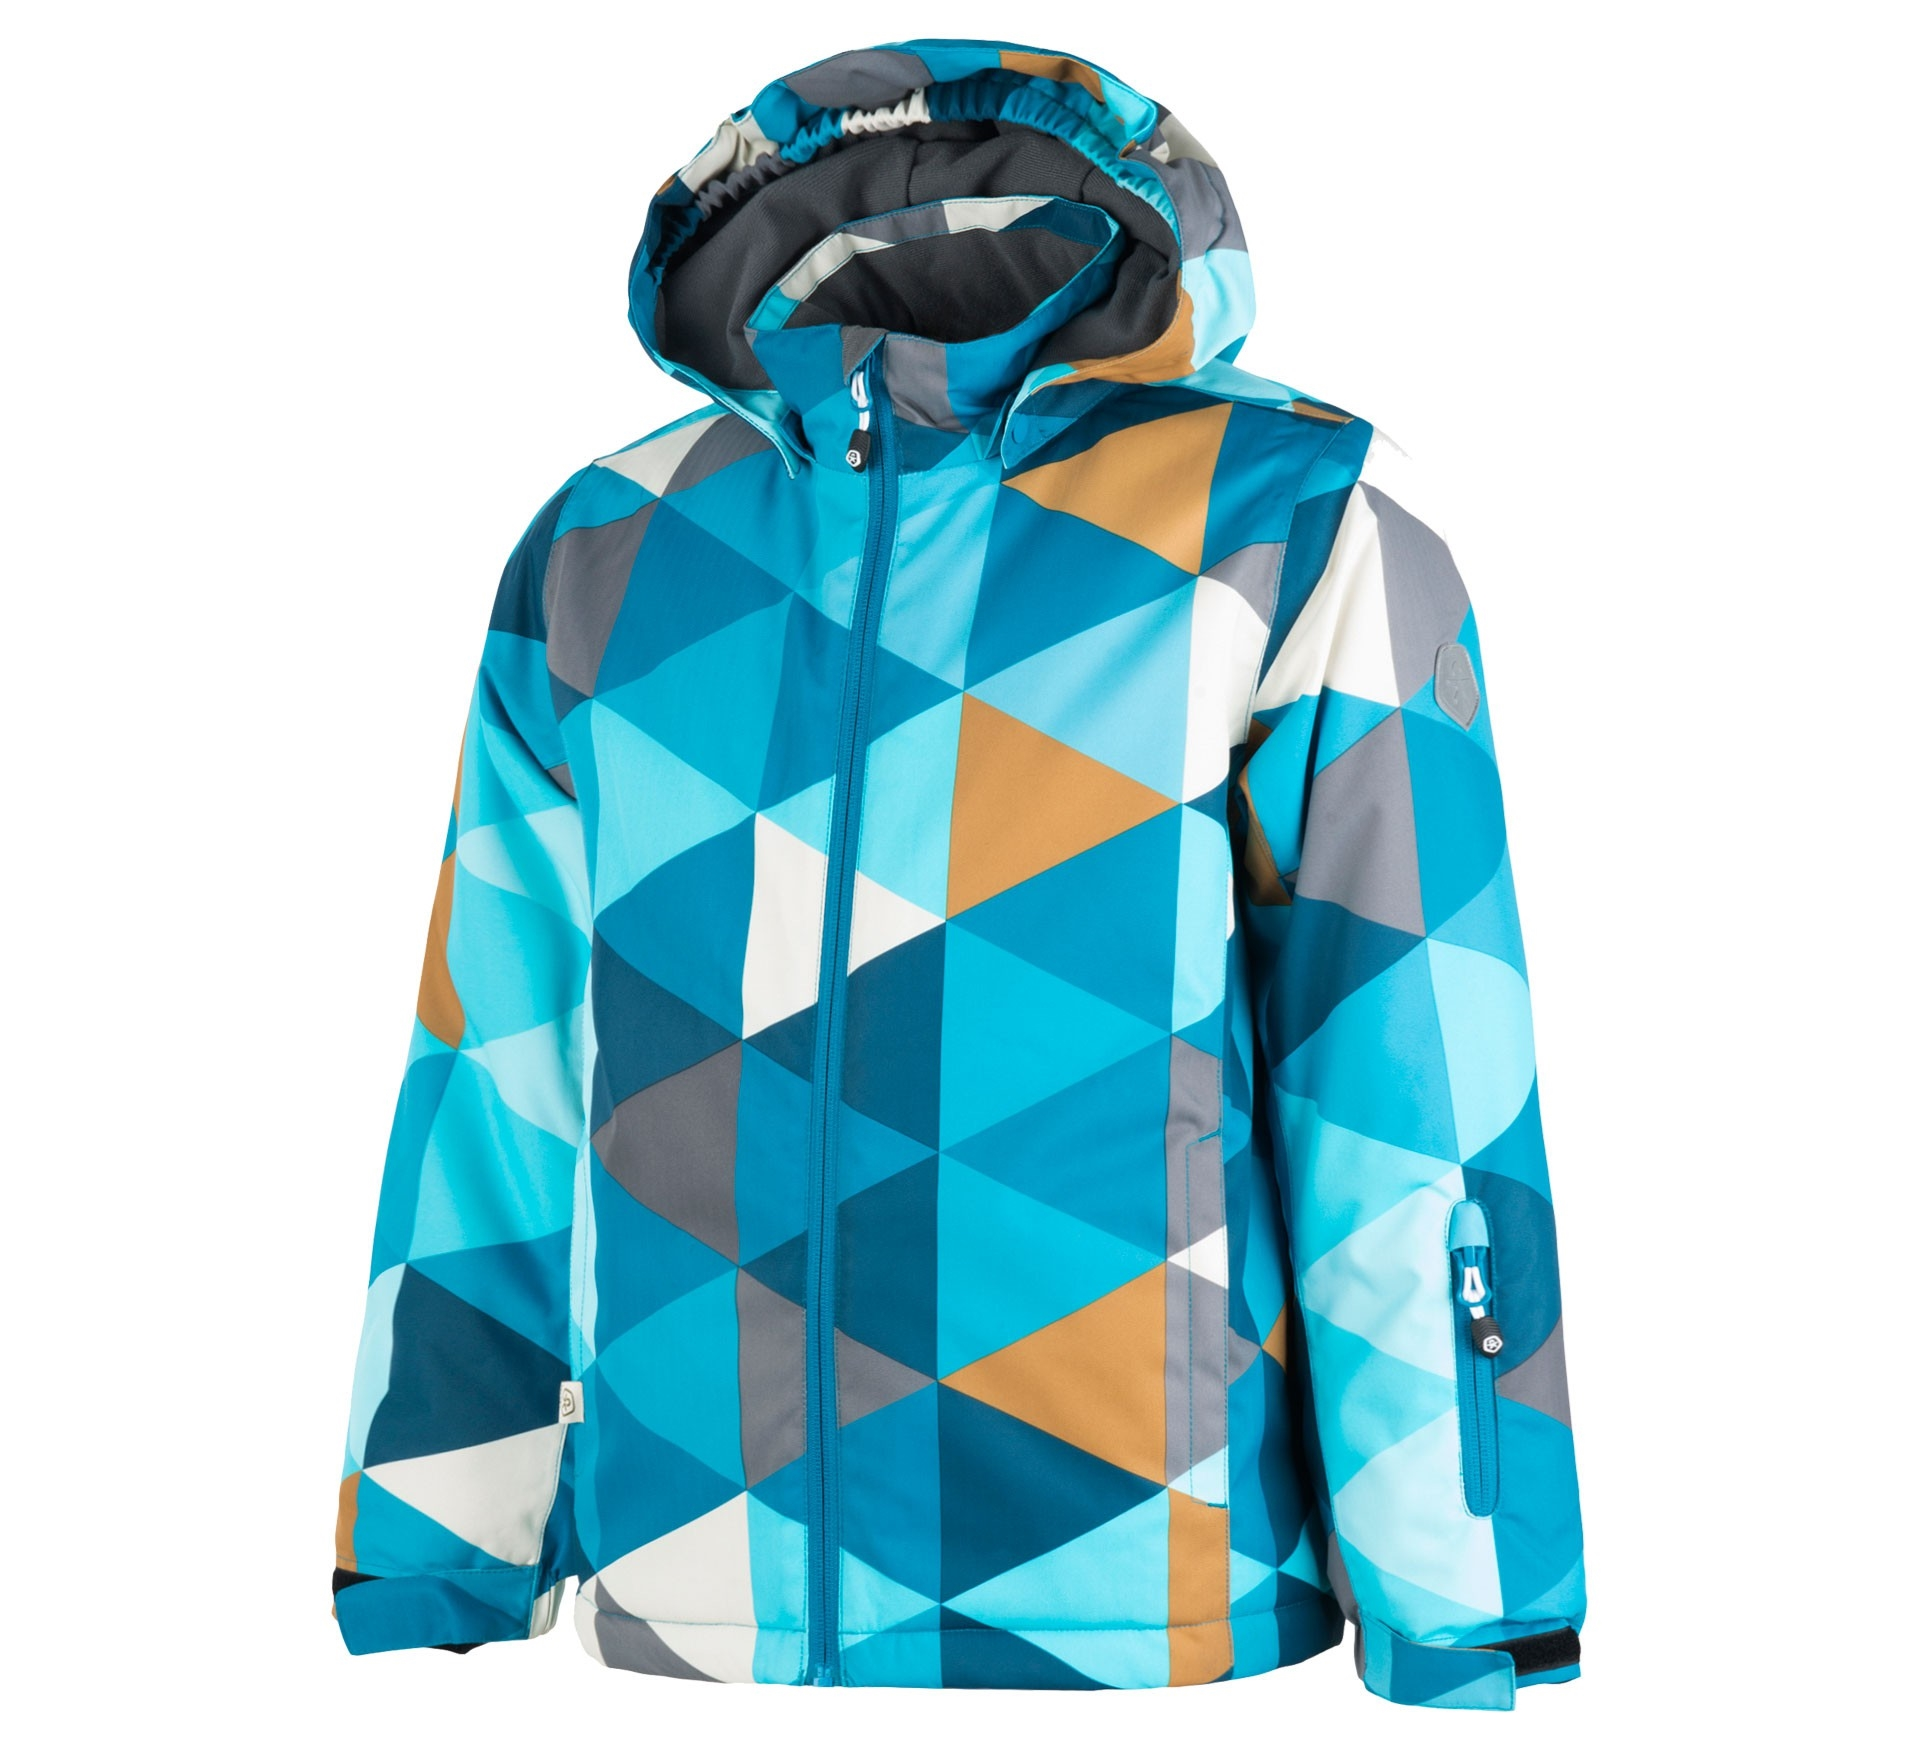 Εικόνα της παιδικο color kids rialto ski jacket 3dc8e5d40f0